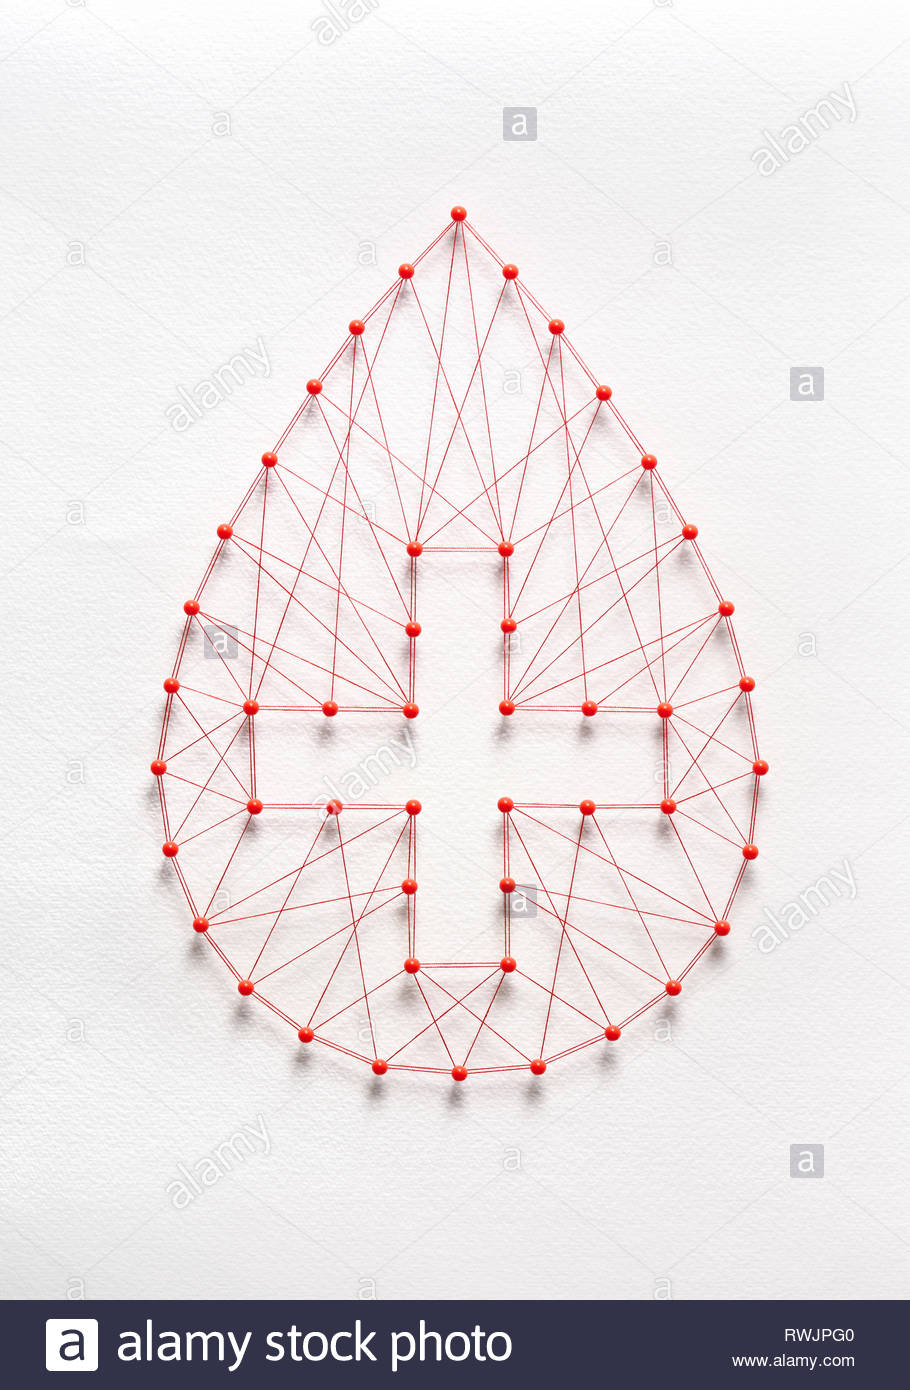 Donate blood concept. Network of pins and threads in the shape of a blood drop symbolising group effort and collaboration for saving lives. - Stock Image